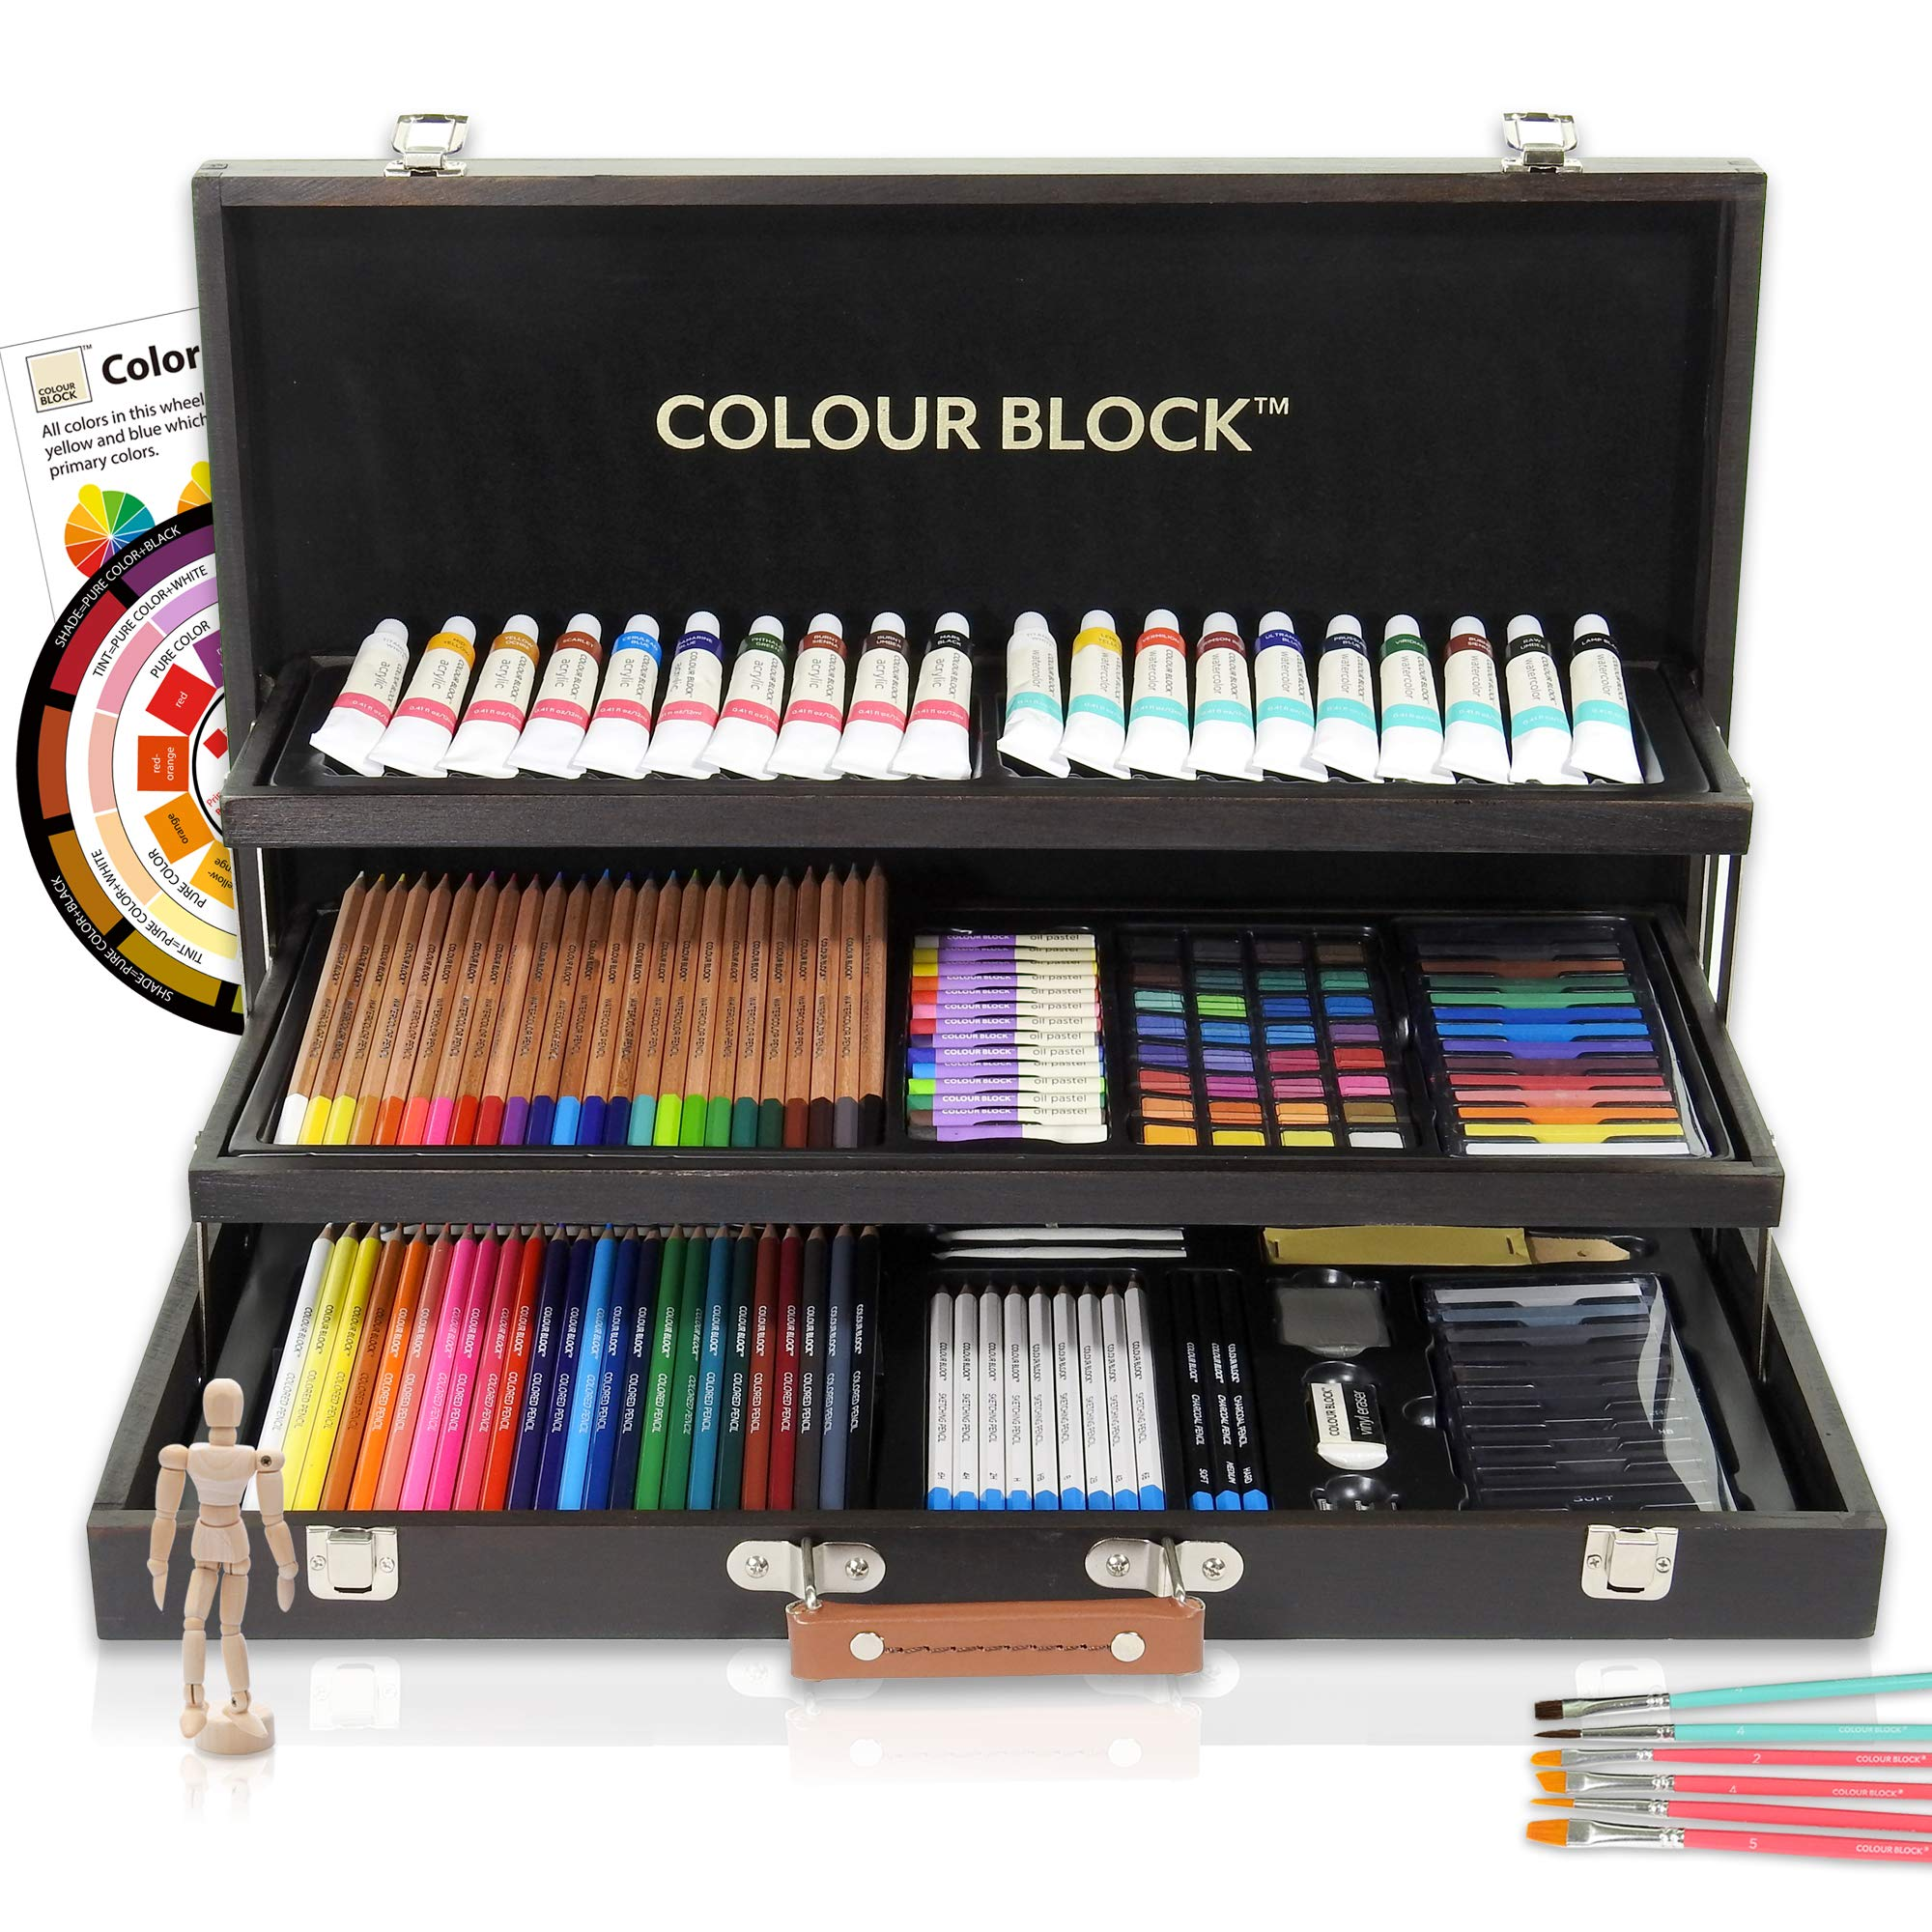 COLOUR BLOCK Deluxe 181 Piece Mixed Media Art Set in Wooden Case, with Soft & Oil Pastels, Acrylic & Watercolor Paints, Water Color, Sketching, Charcoal & Colored Pencils, Watercolor Cakes and Tools by COLOUR BLOCK